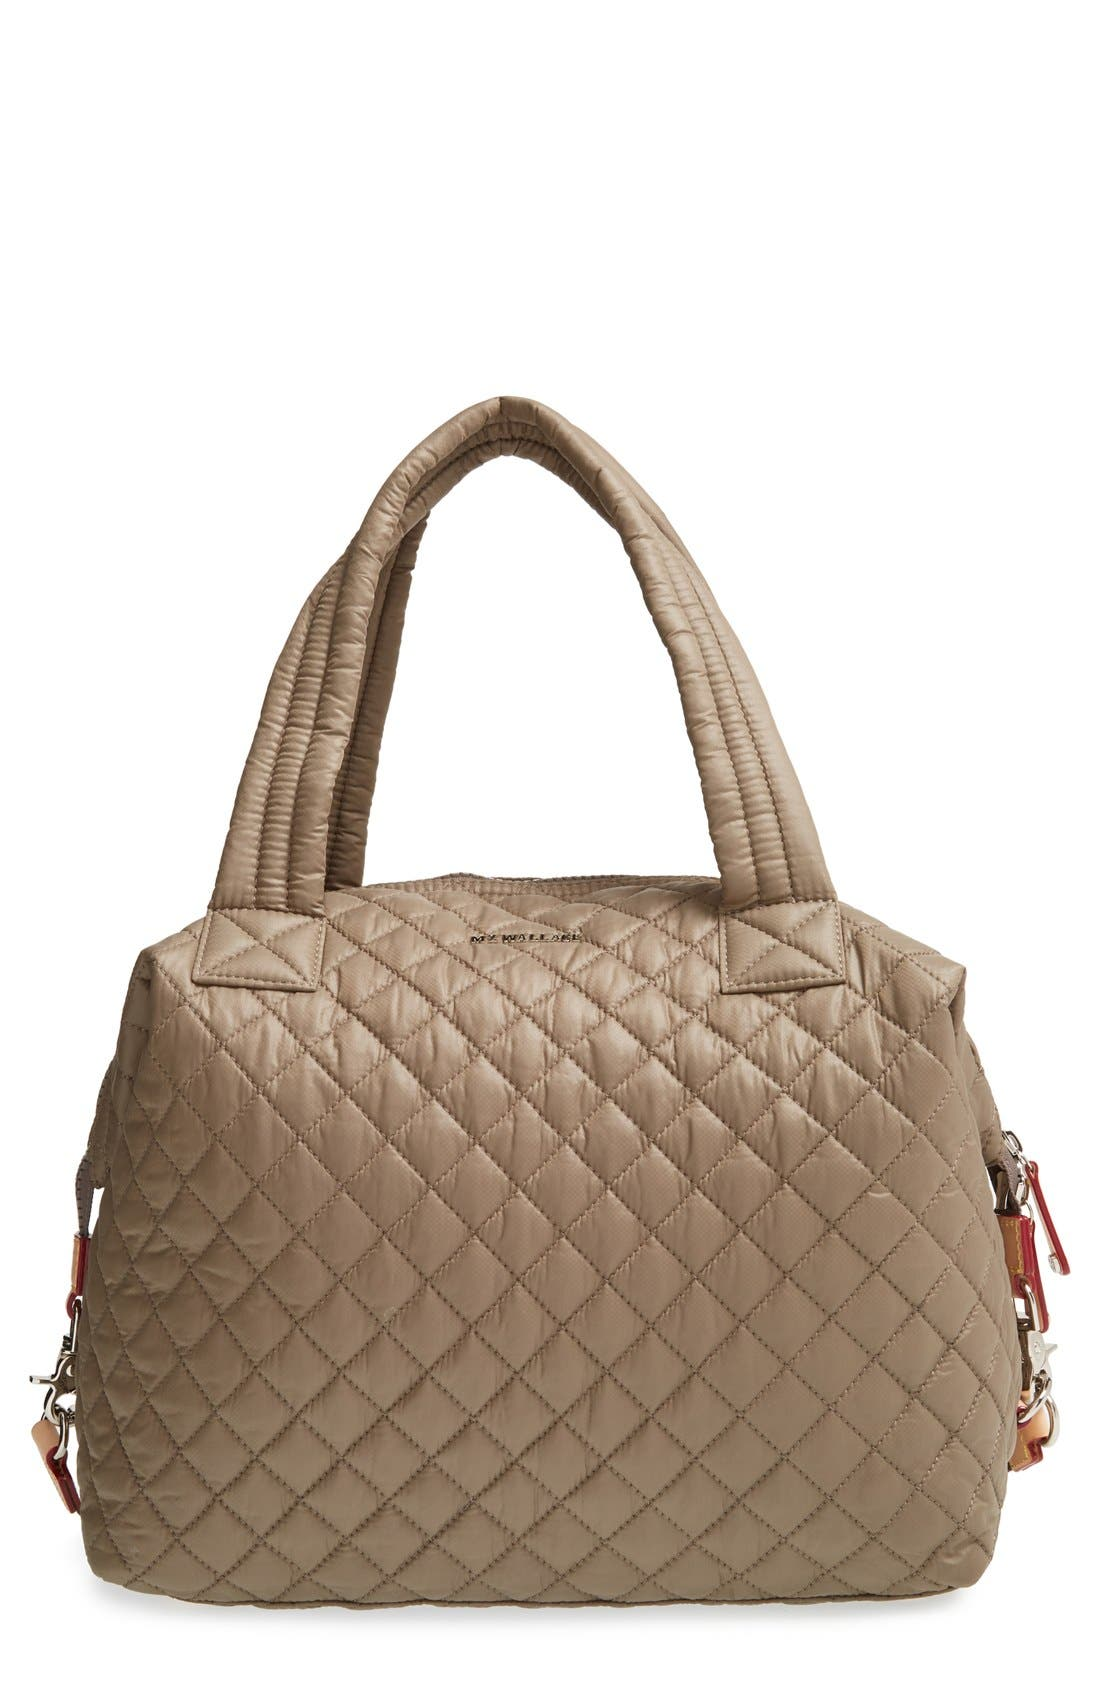 Mz Wallace Bags 'LARGE SUTTON' QUILTED OXFORD NYLON SATCHEL - BEIGE